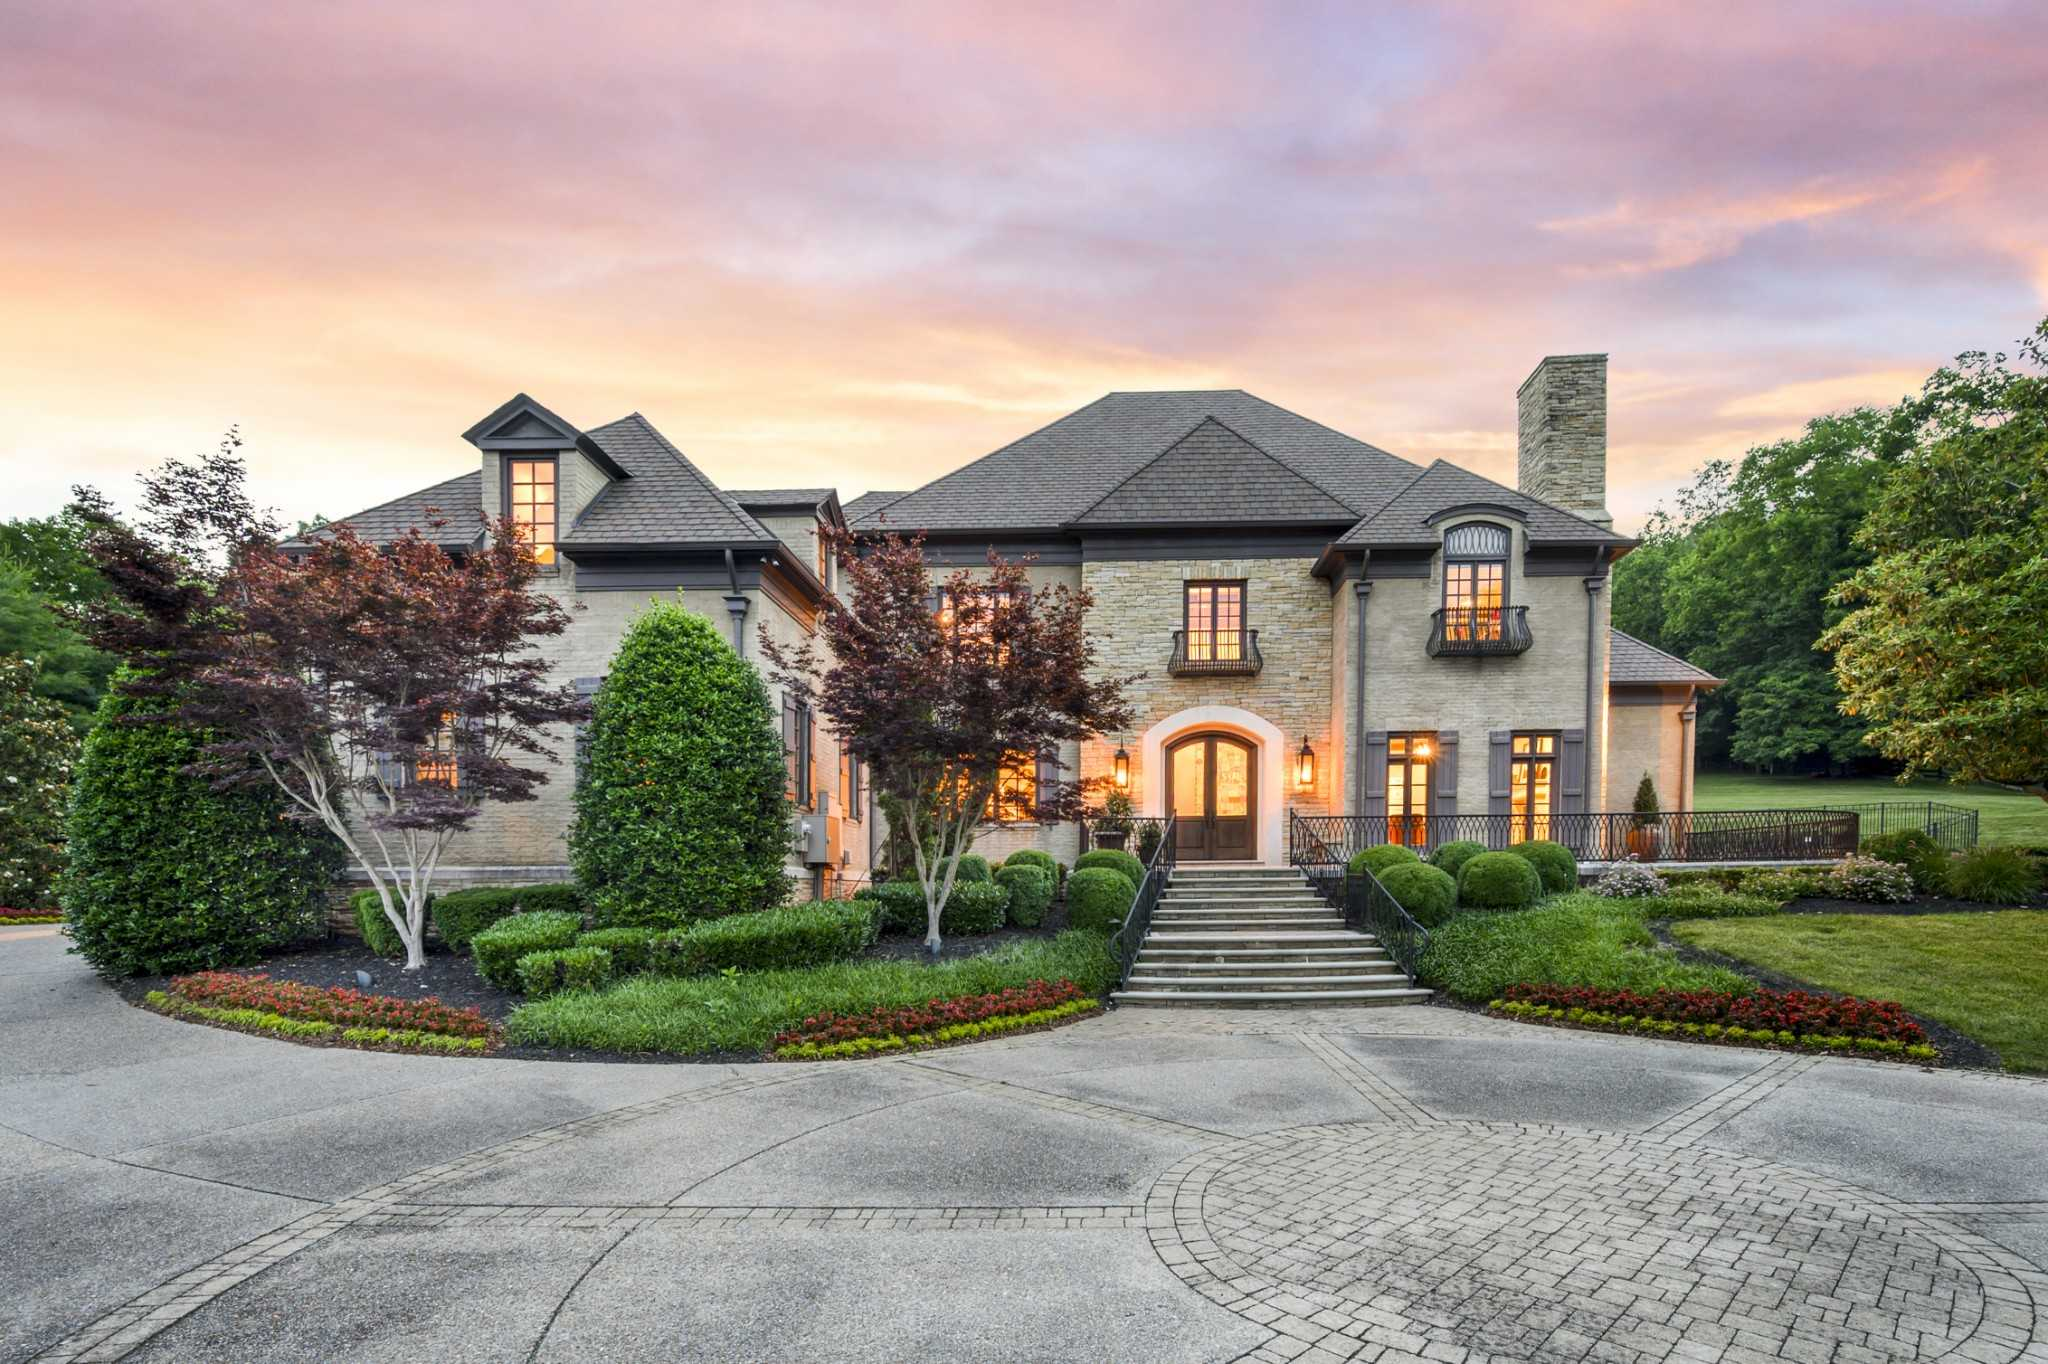 $2,750,000 - 4Br/9Ba -  for Sale in Agincourt, Brentwood